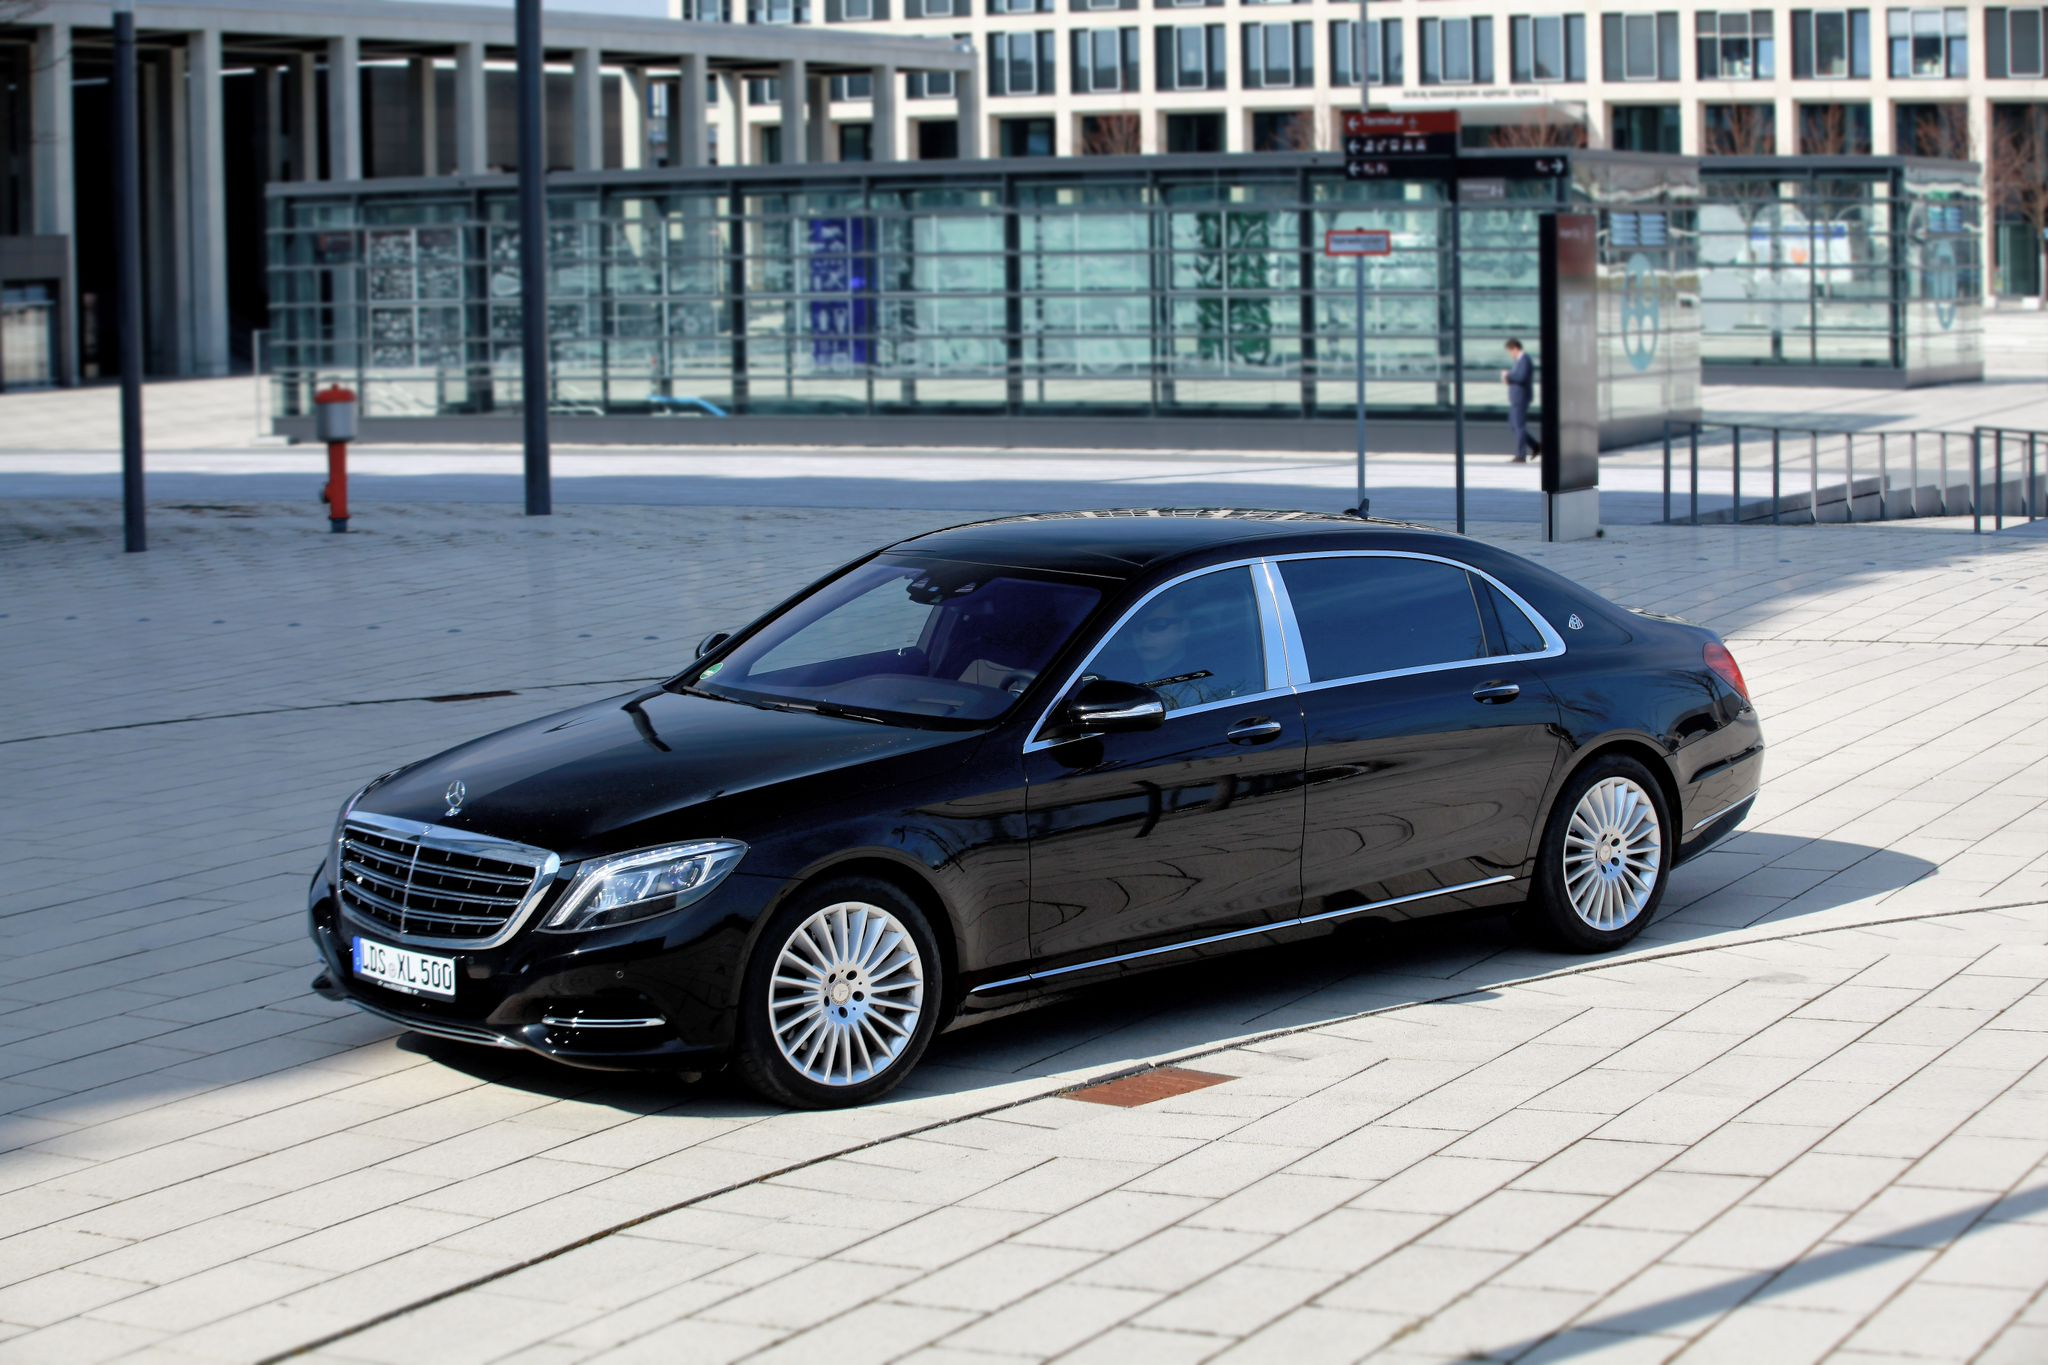 Mercedes S Klasse Maybach Images & Pictures - Becuo